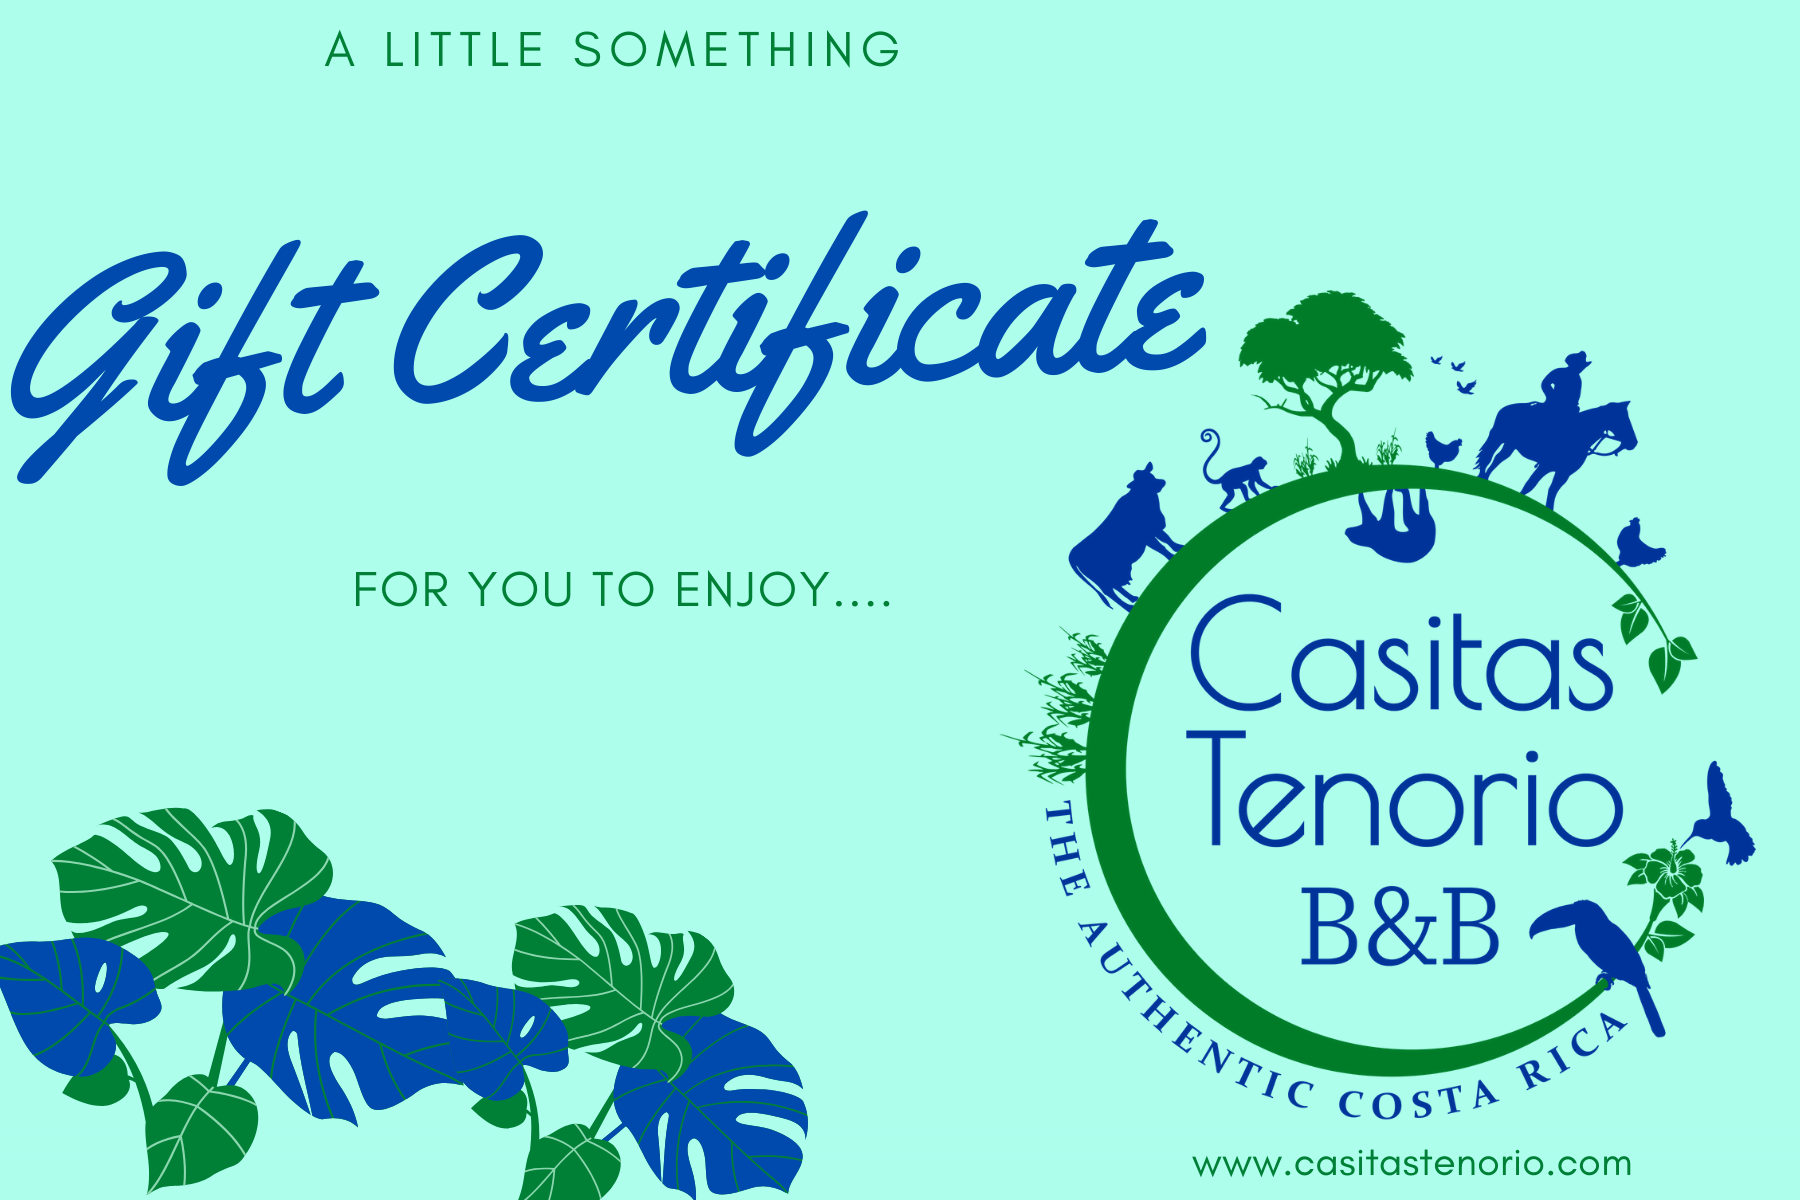 Buy a Gift Card for use at Casitas Tenorio B&B